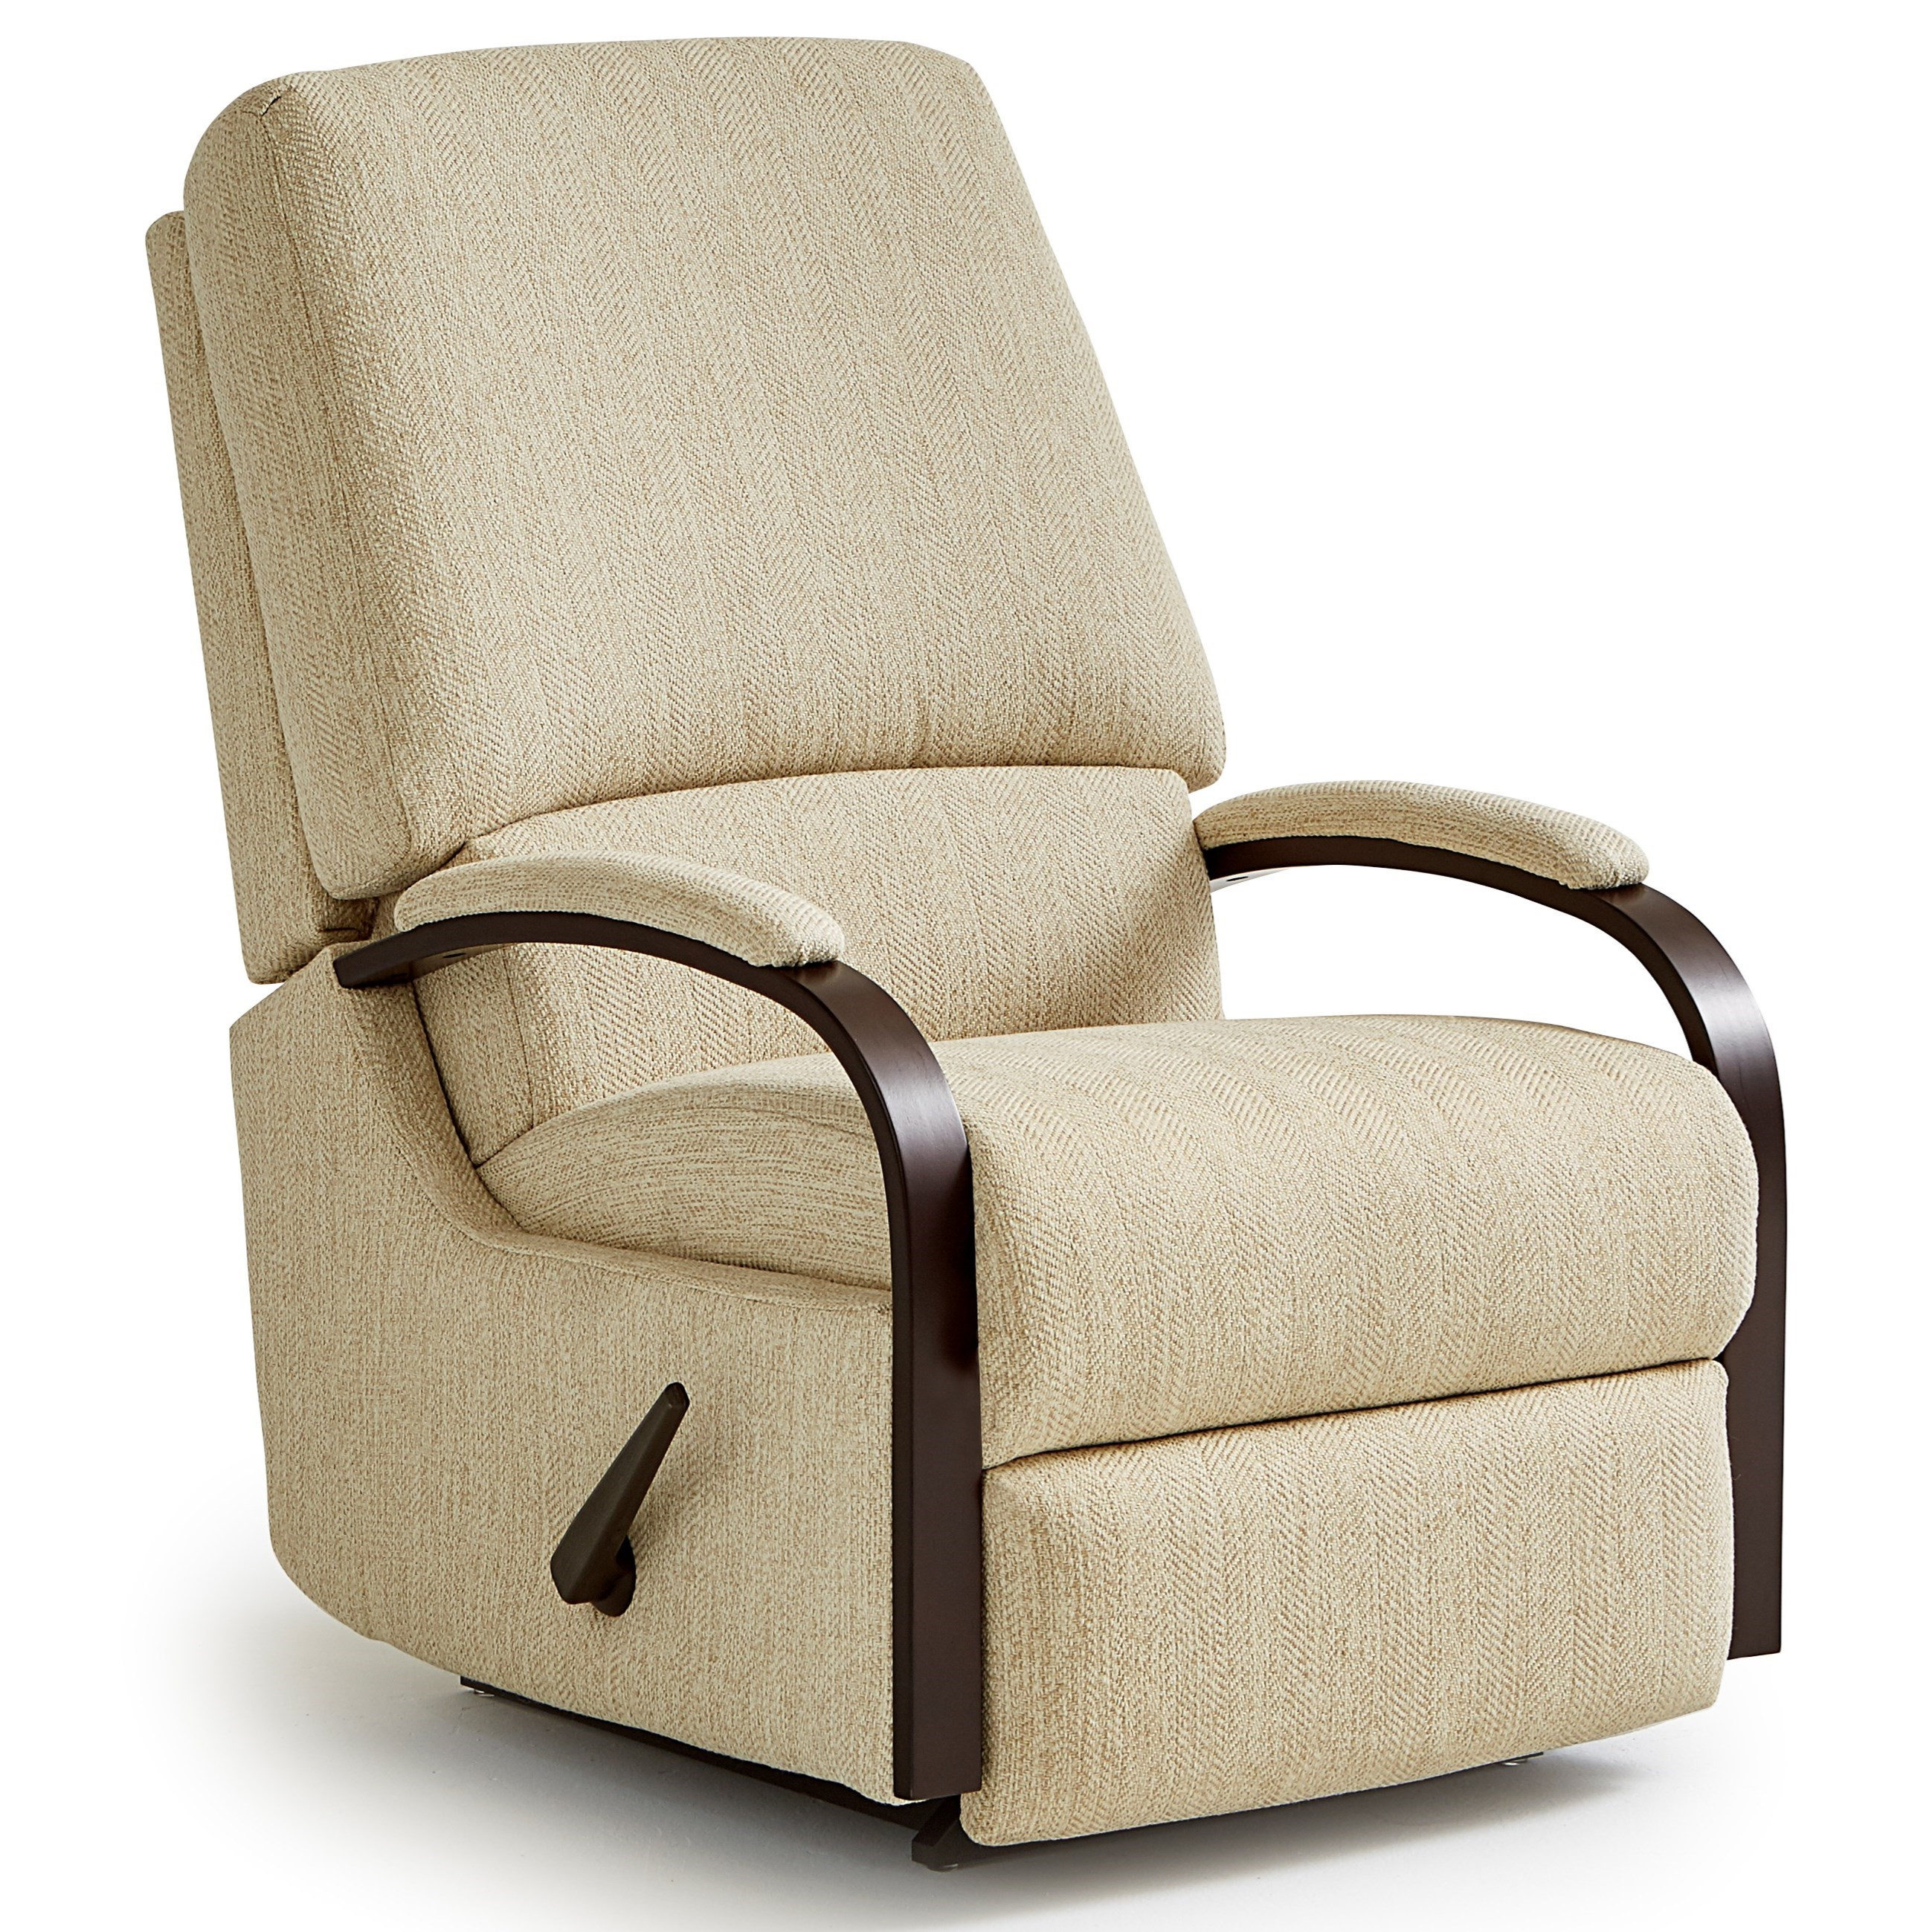 rocker and recliner chair swivel oversized best home furnishings medium recliners pike rocking reclining